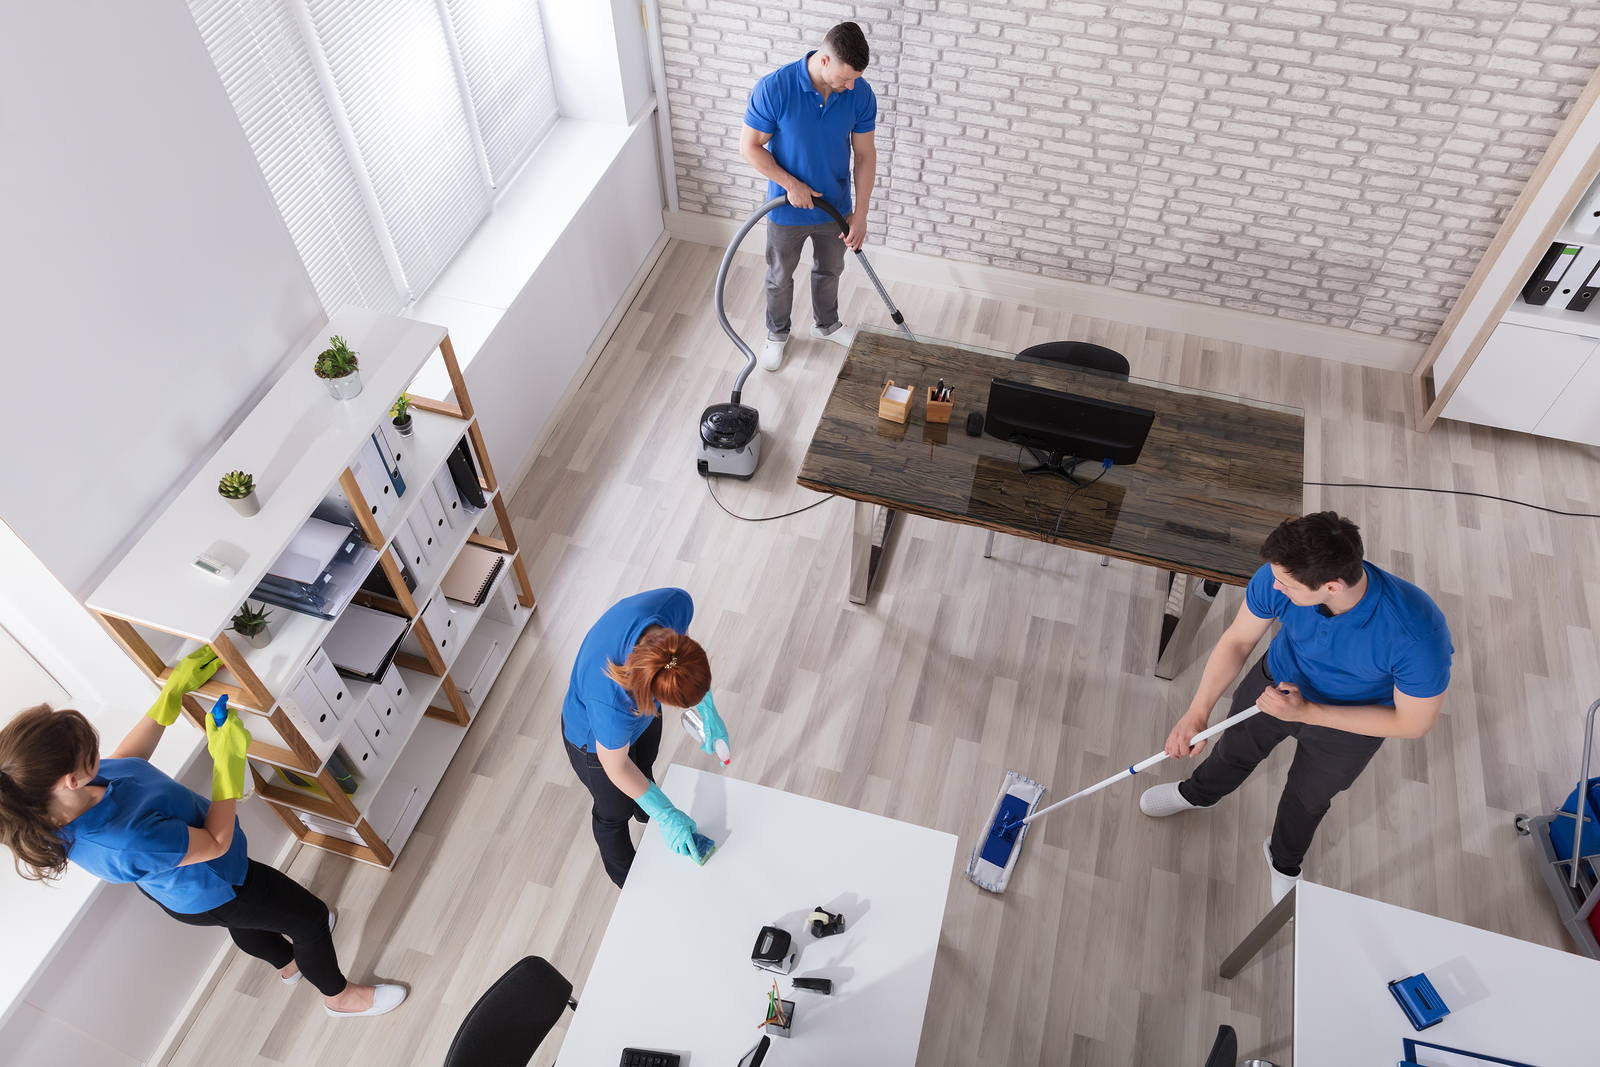 How to Price a House Cleaning Job